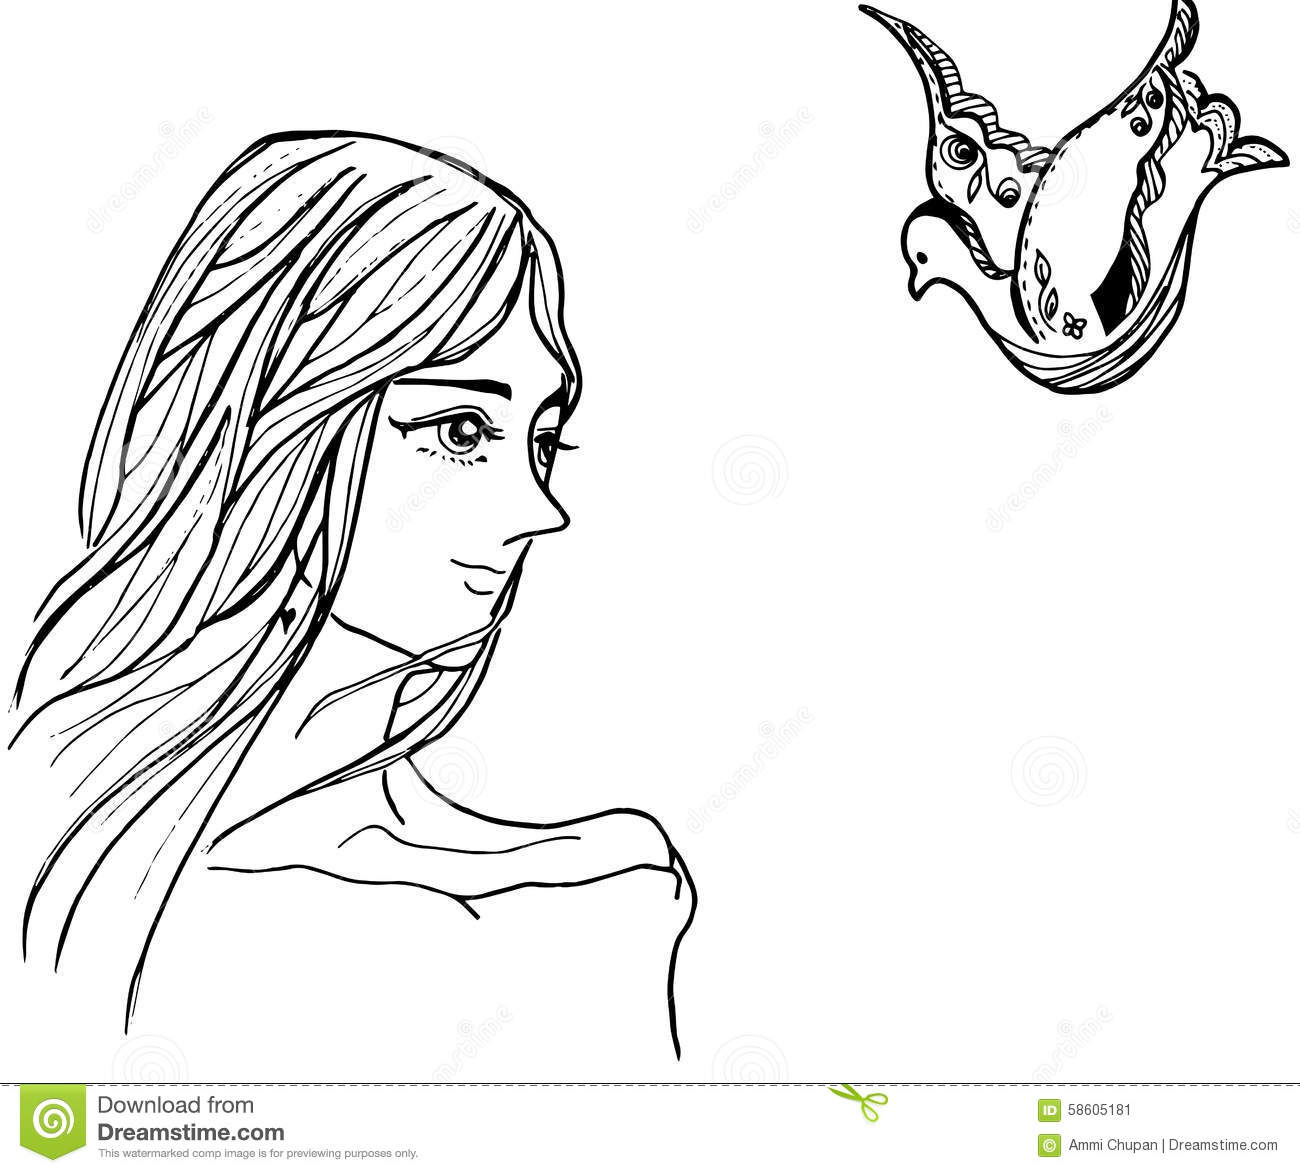 Line Art Design Illustration : Illustration of women and bird line art drawing black